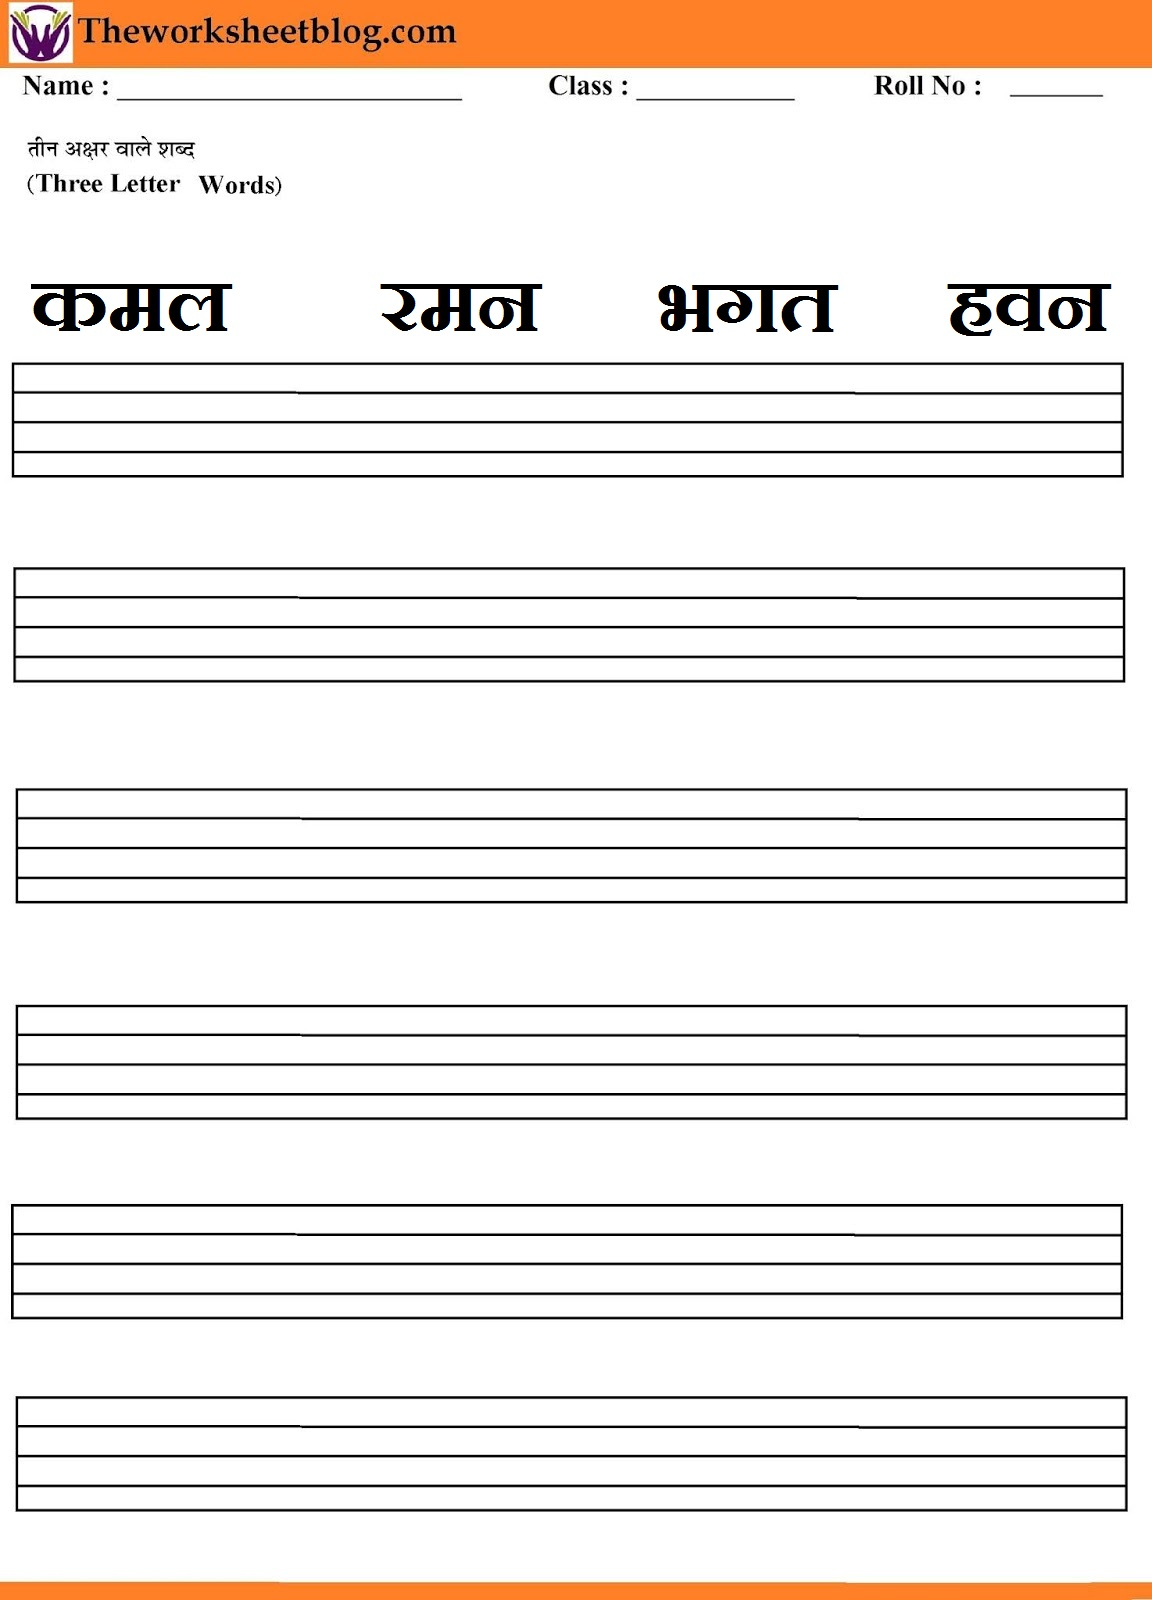 Three Letter Words Worksheet In Hindi